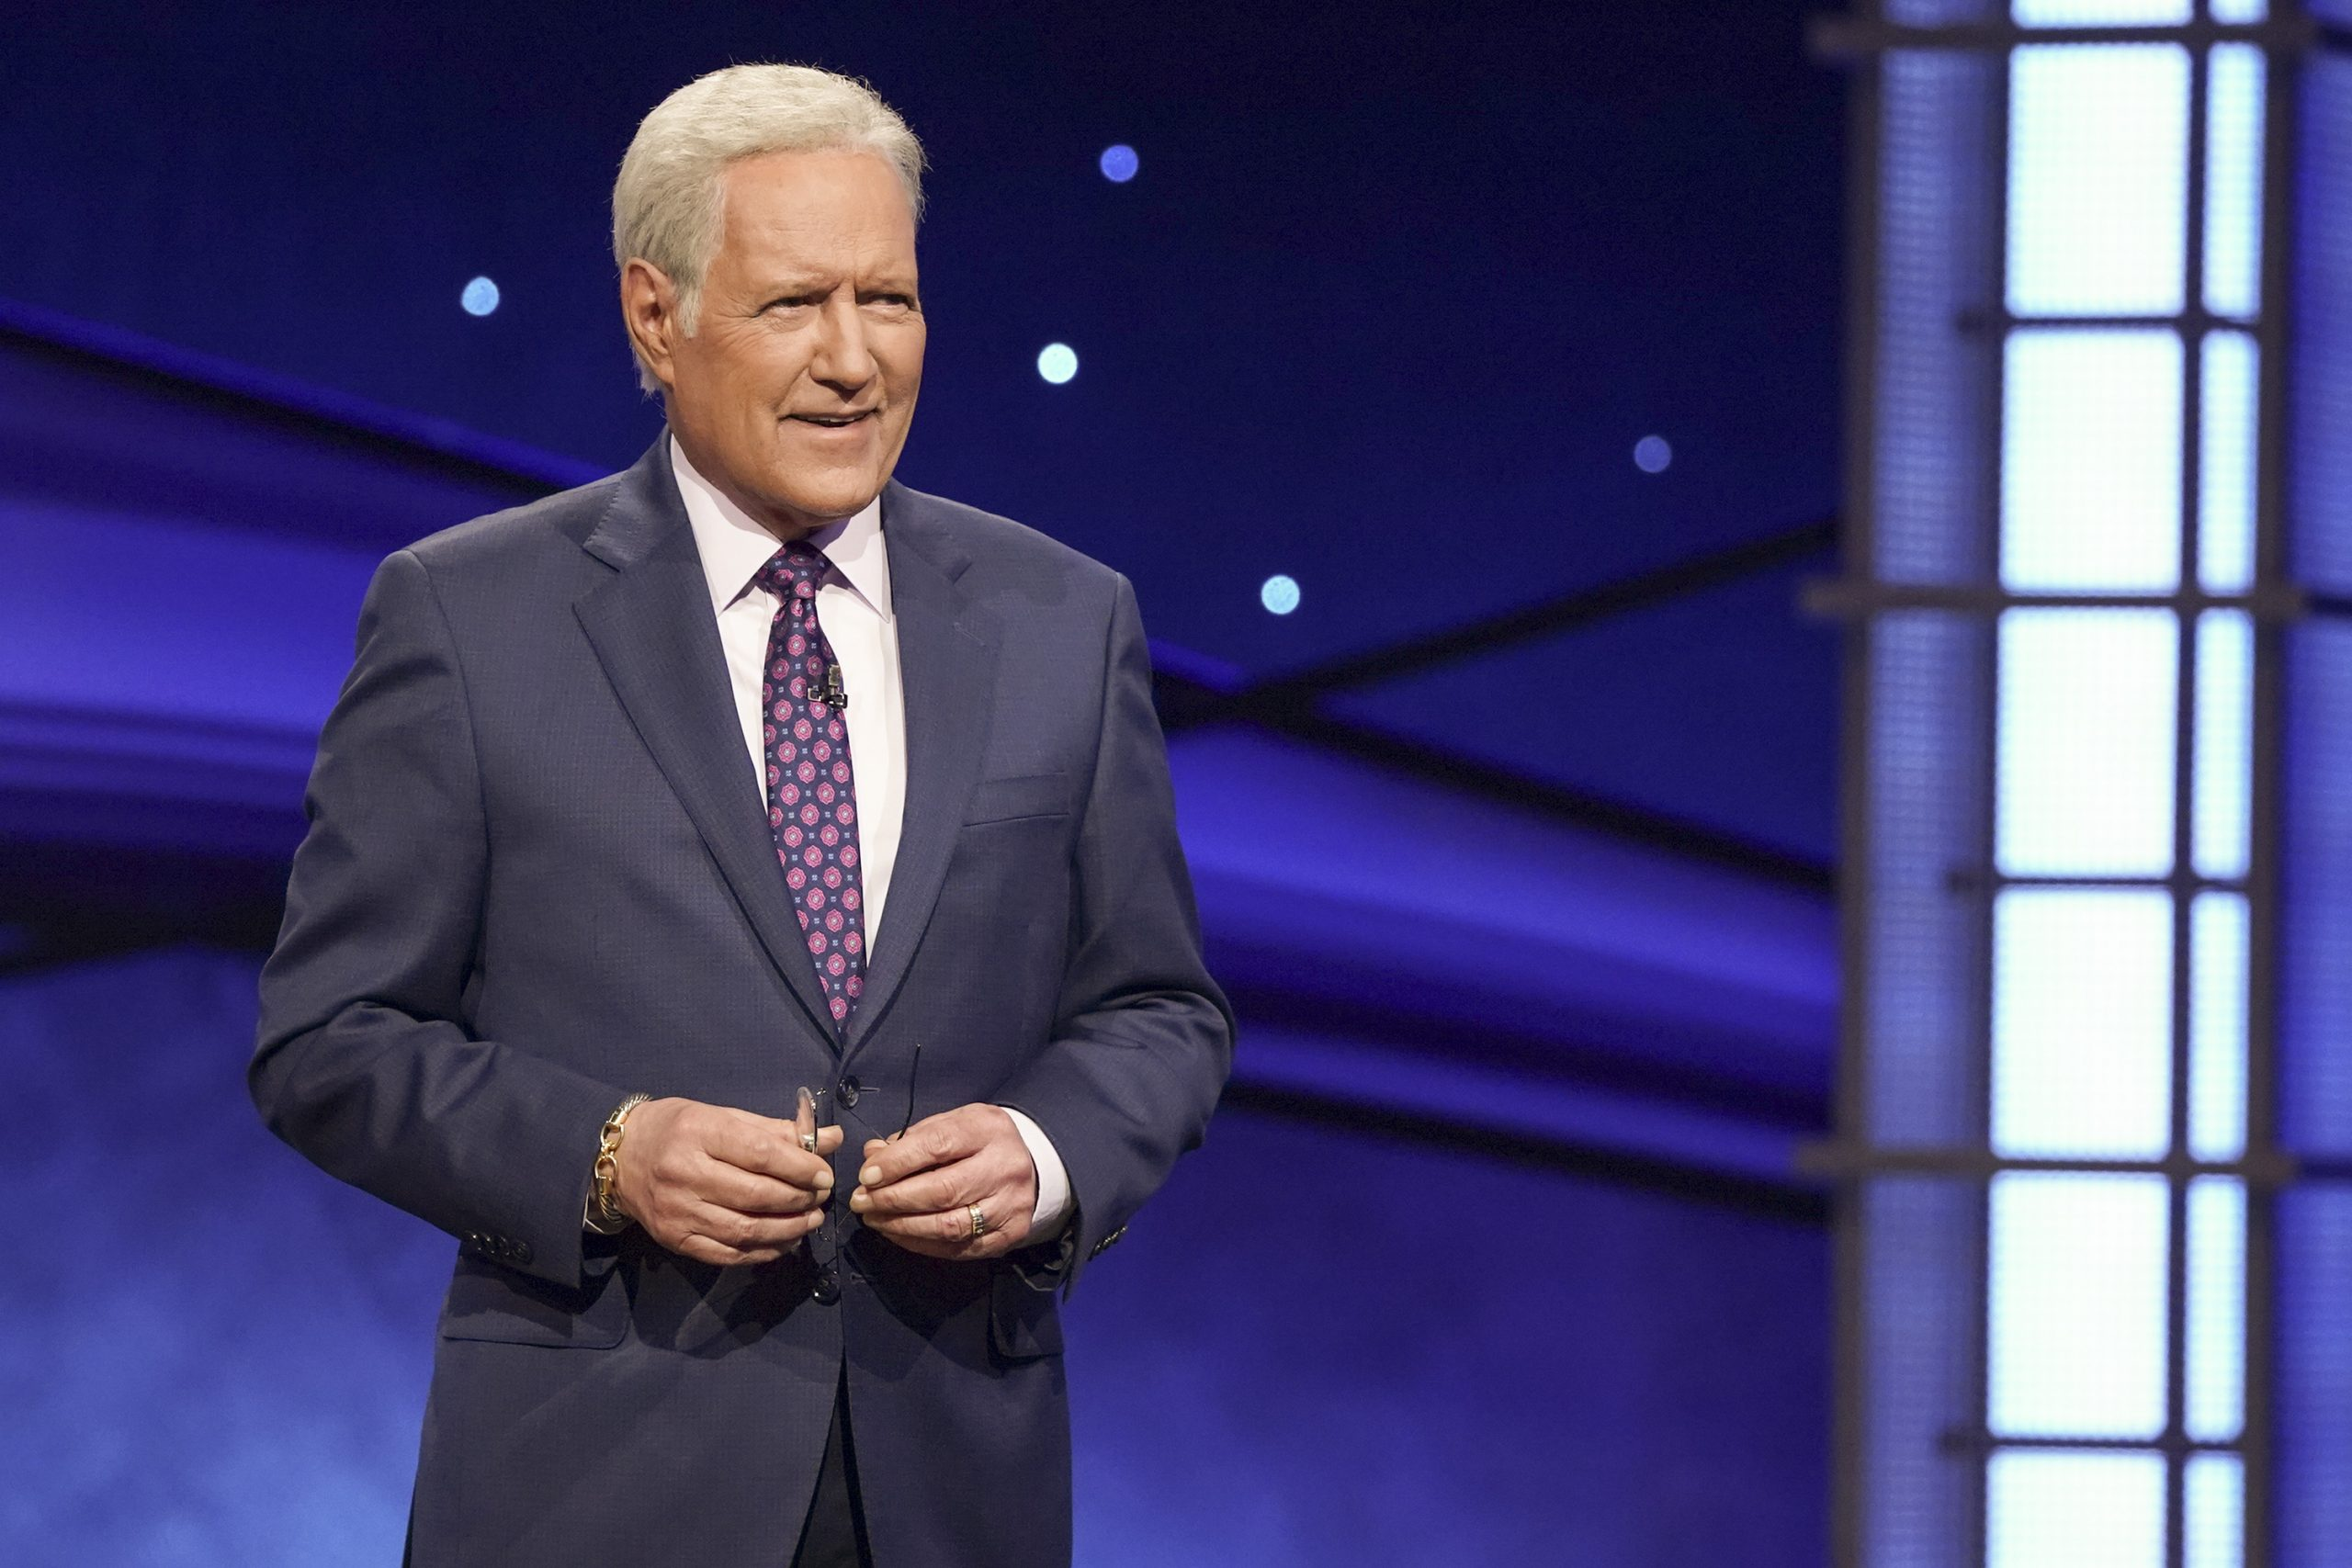 Trebek 'feeling great,' plans for 'Jeopardy!' return in September